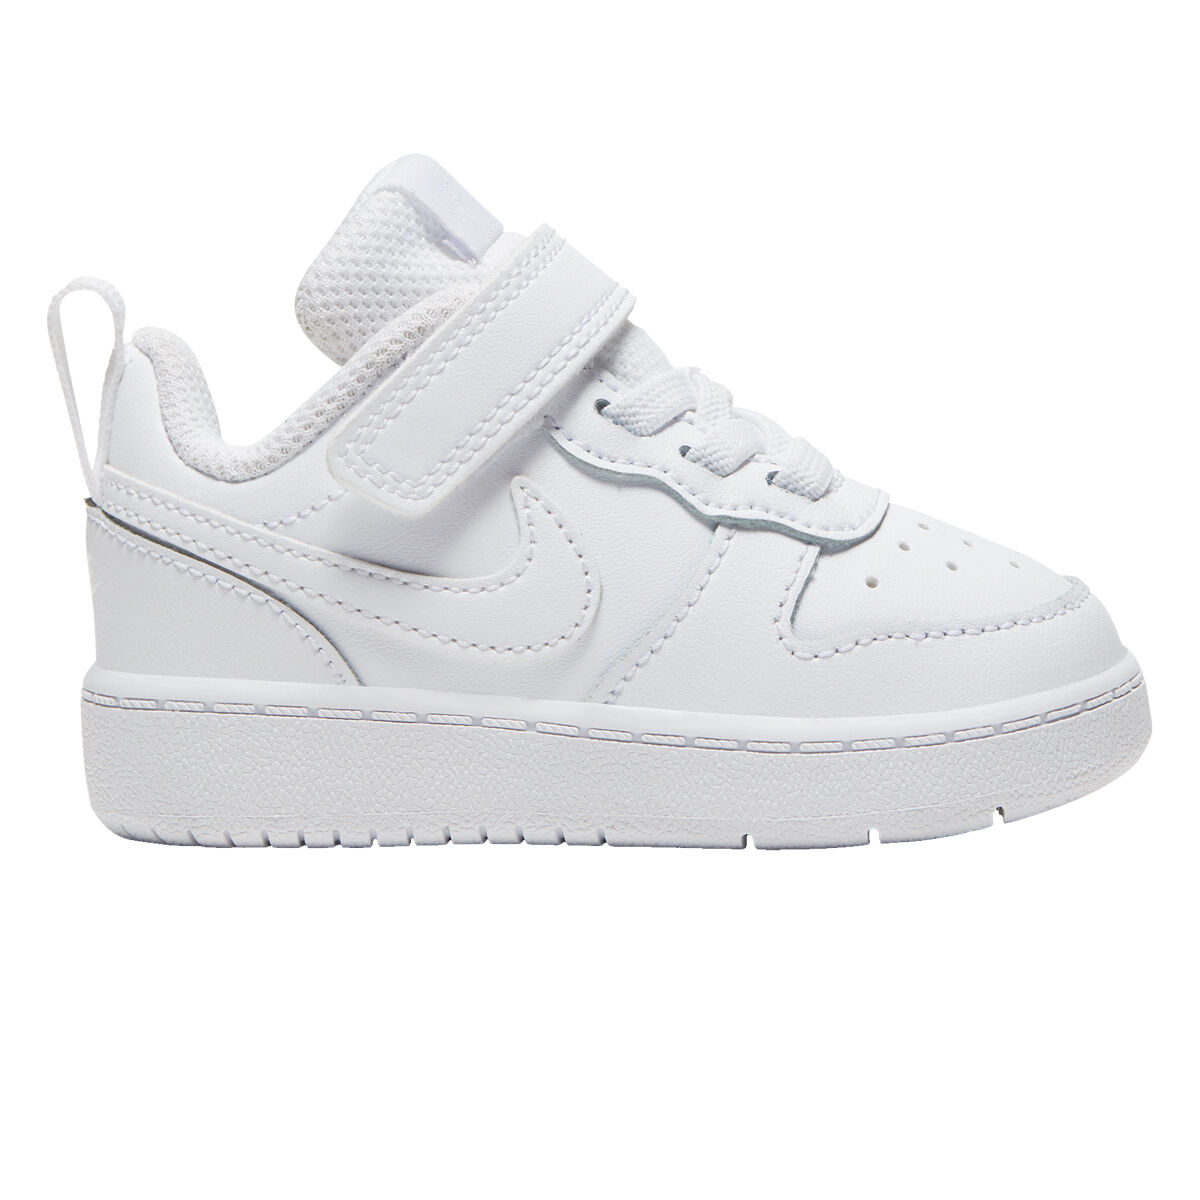 Sport shoes for kids made in leather by Nike Court Borough